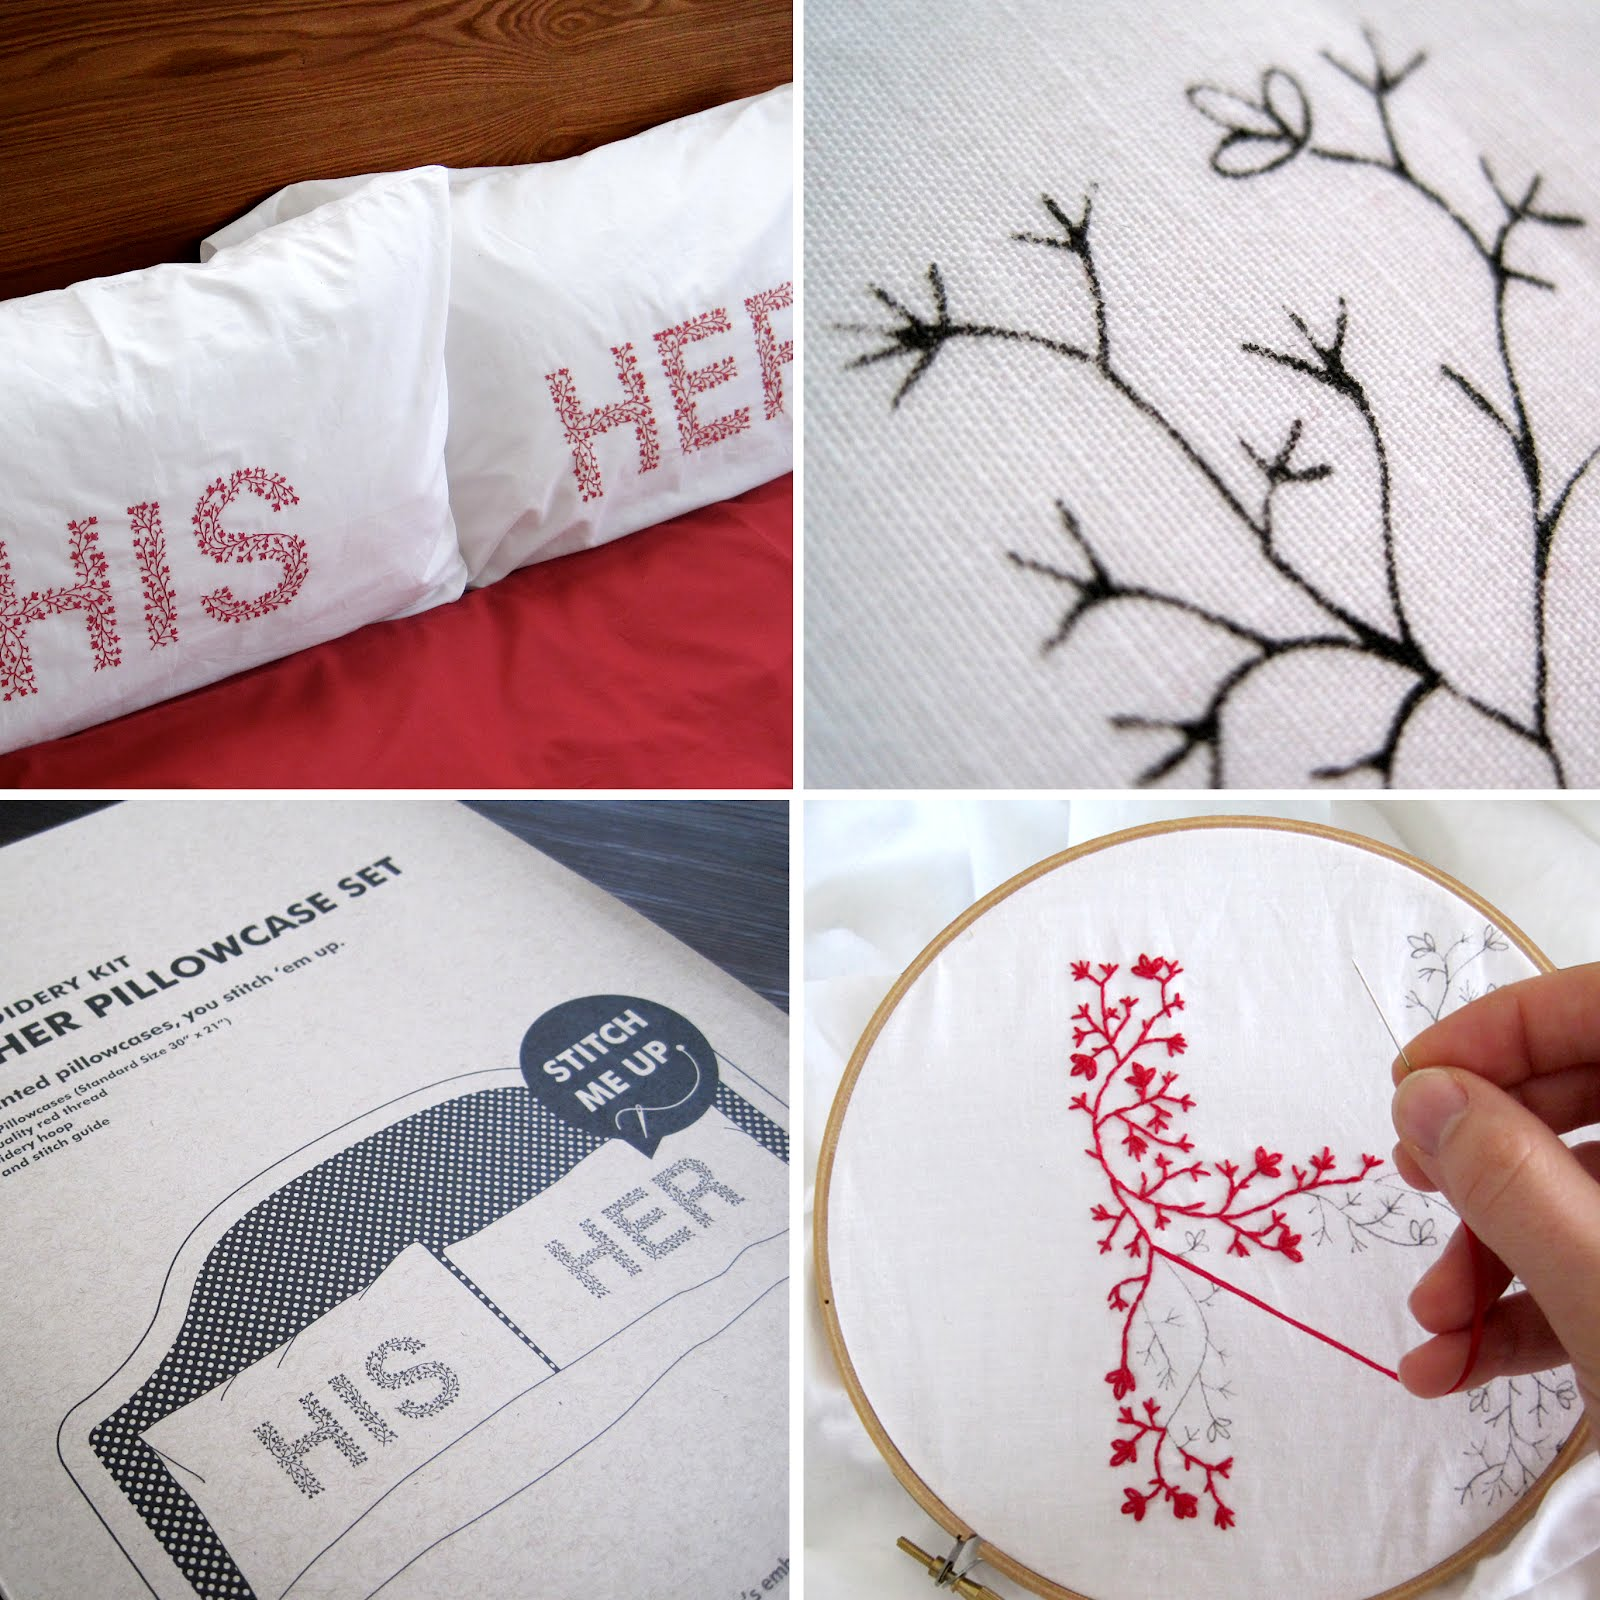 CuriousDoodles: Product Release: His & Her Pillowcase Embroidery Kit